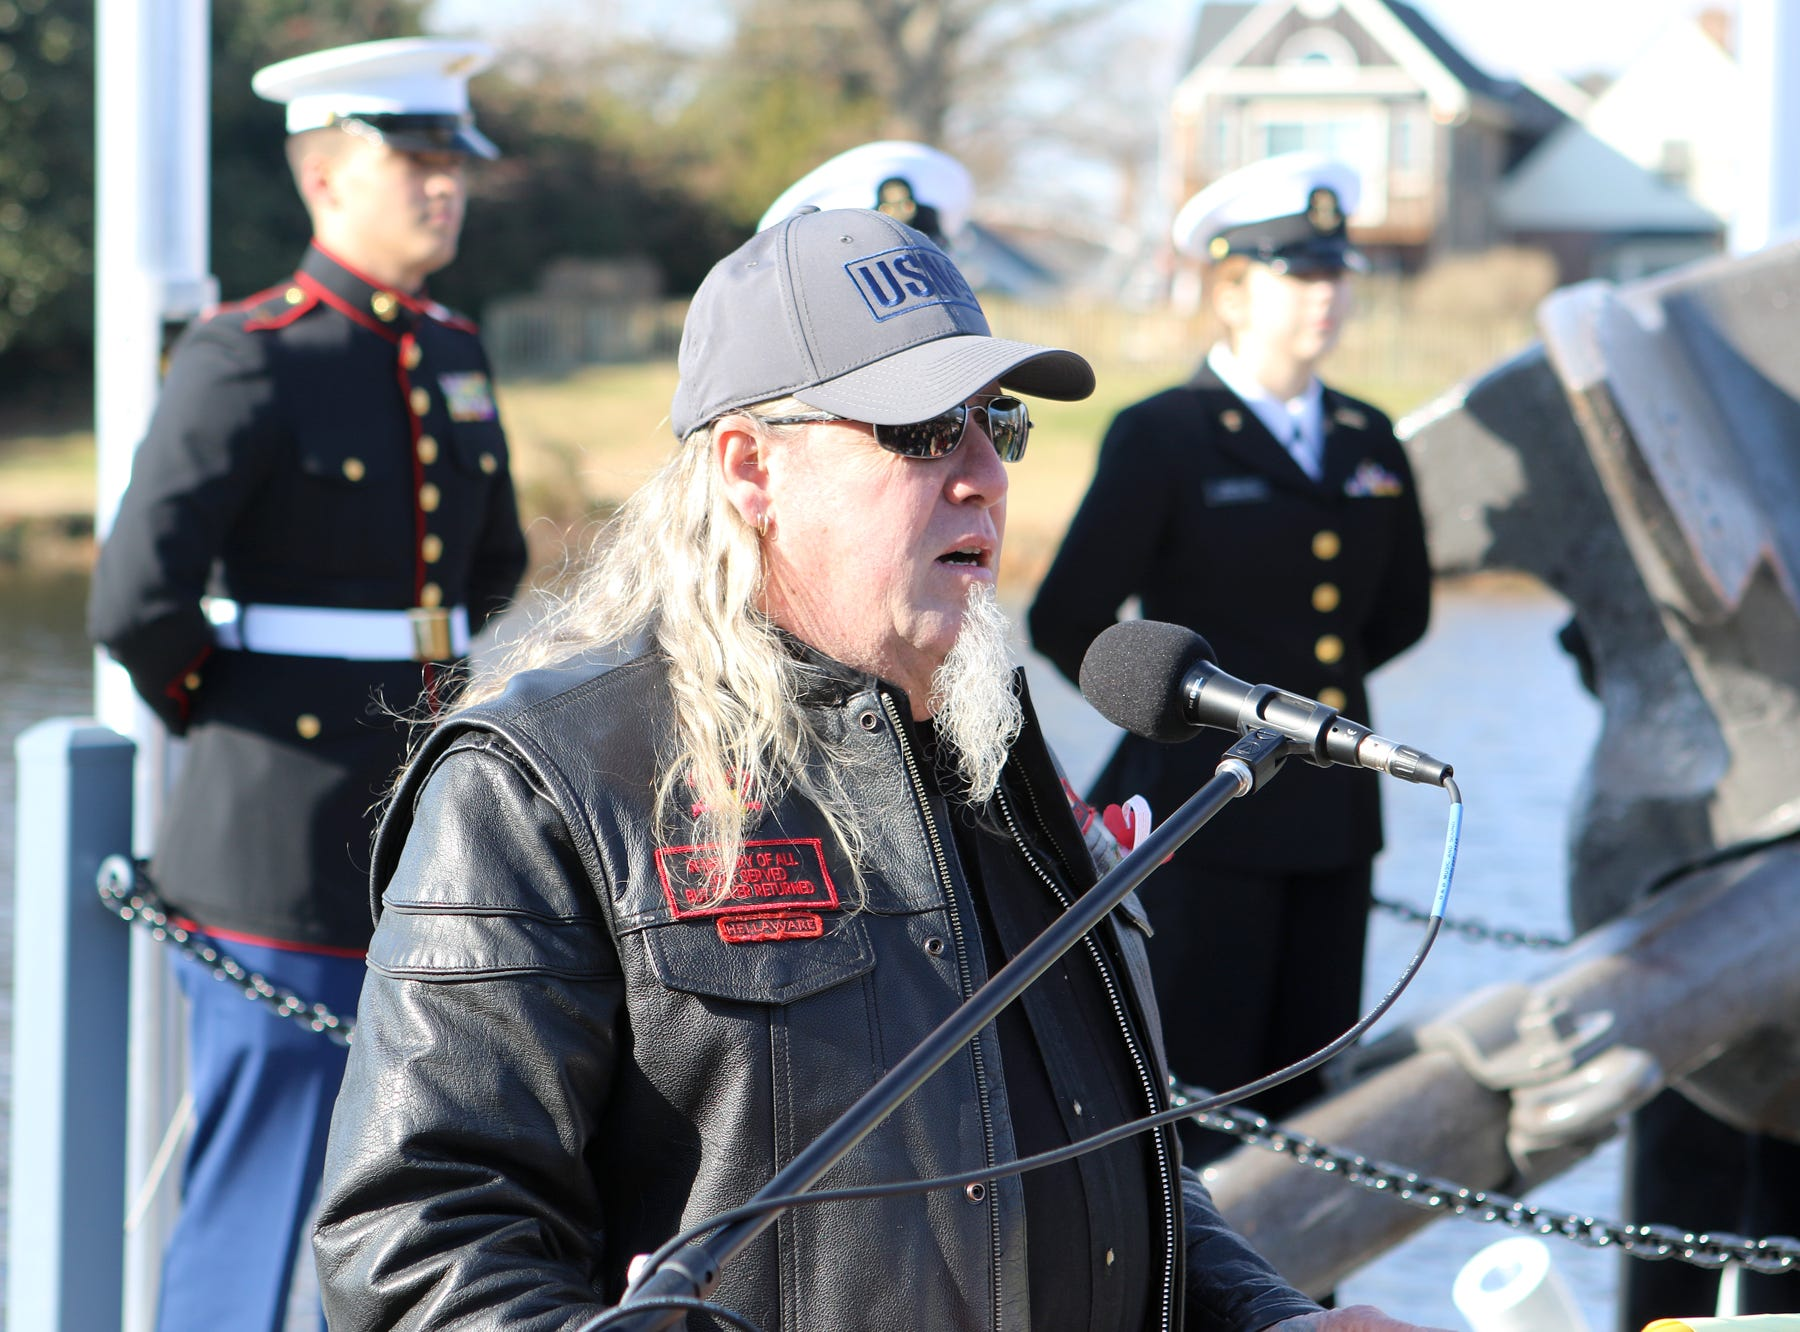 A memorial commemmorating the attack on Pearl Harbor on Dec. 7, 1941, was dedicated Friday at Lake Como in the Town of Smyrna. The memorial includes an anchor from a 1942 U.S. Navy destroyer. Terry Baker, a life member of the Vietnam Vets Legacy Vets Motorcycle Club was the emcee.